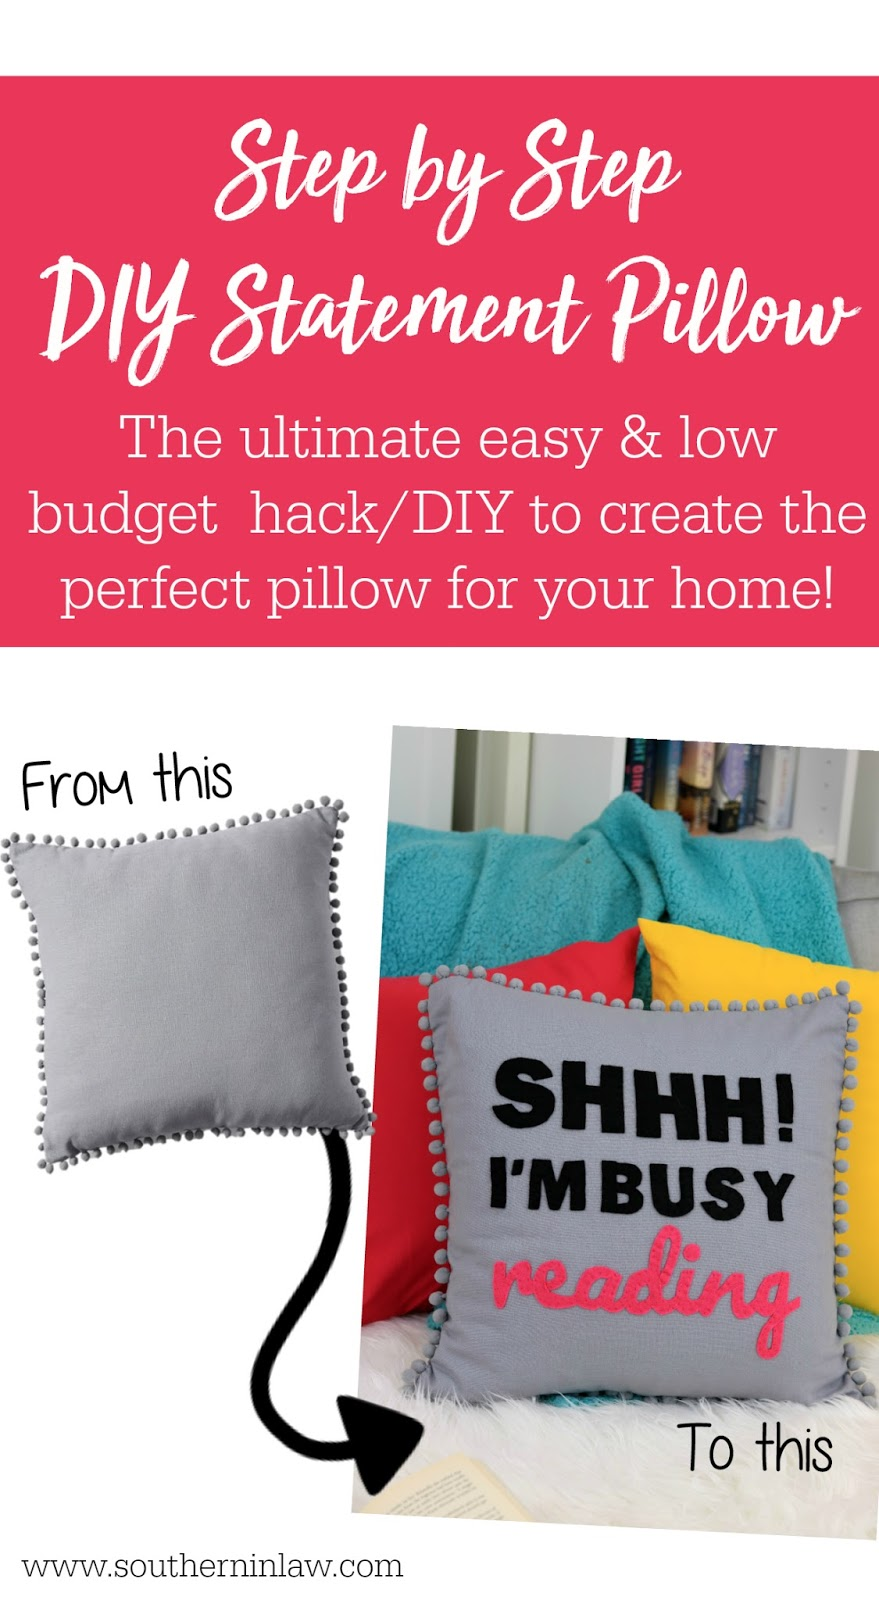 Easy DIY Statement Pillow Hack Tutorial - Low Budget Craft DIY Projects for Your Home and Home Decor